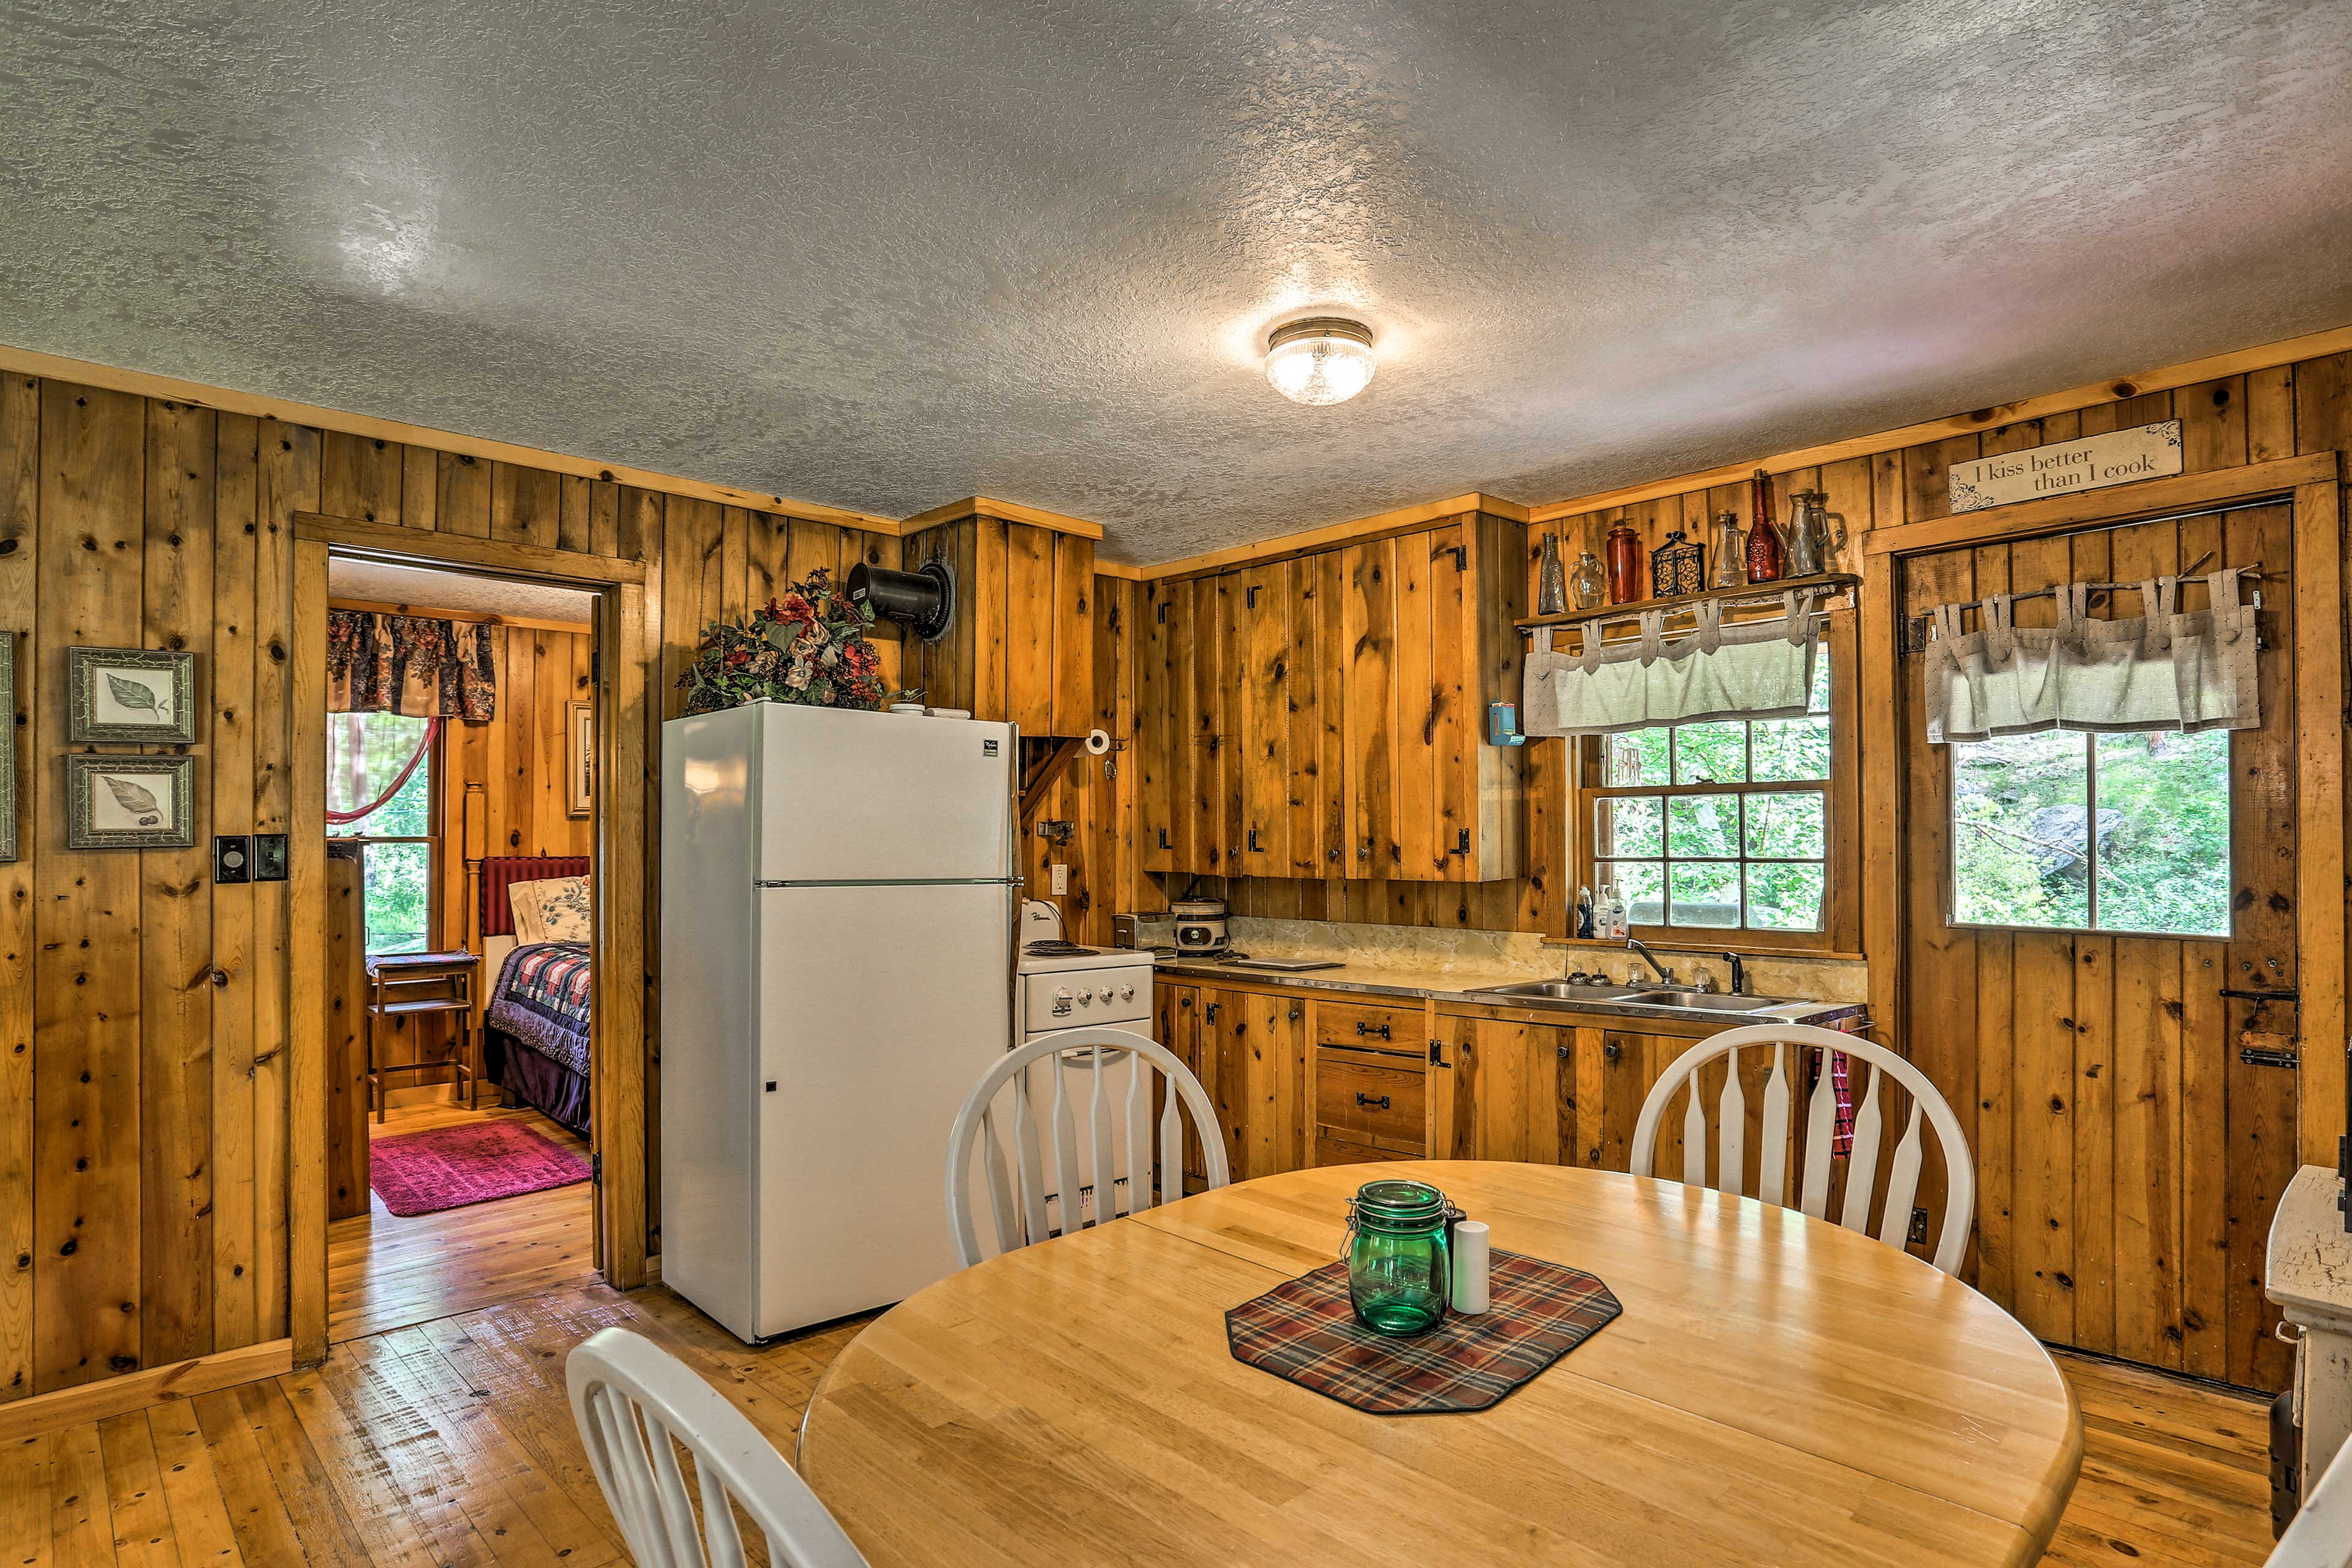 The kitchen is fully equipped with updated appliances.